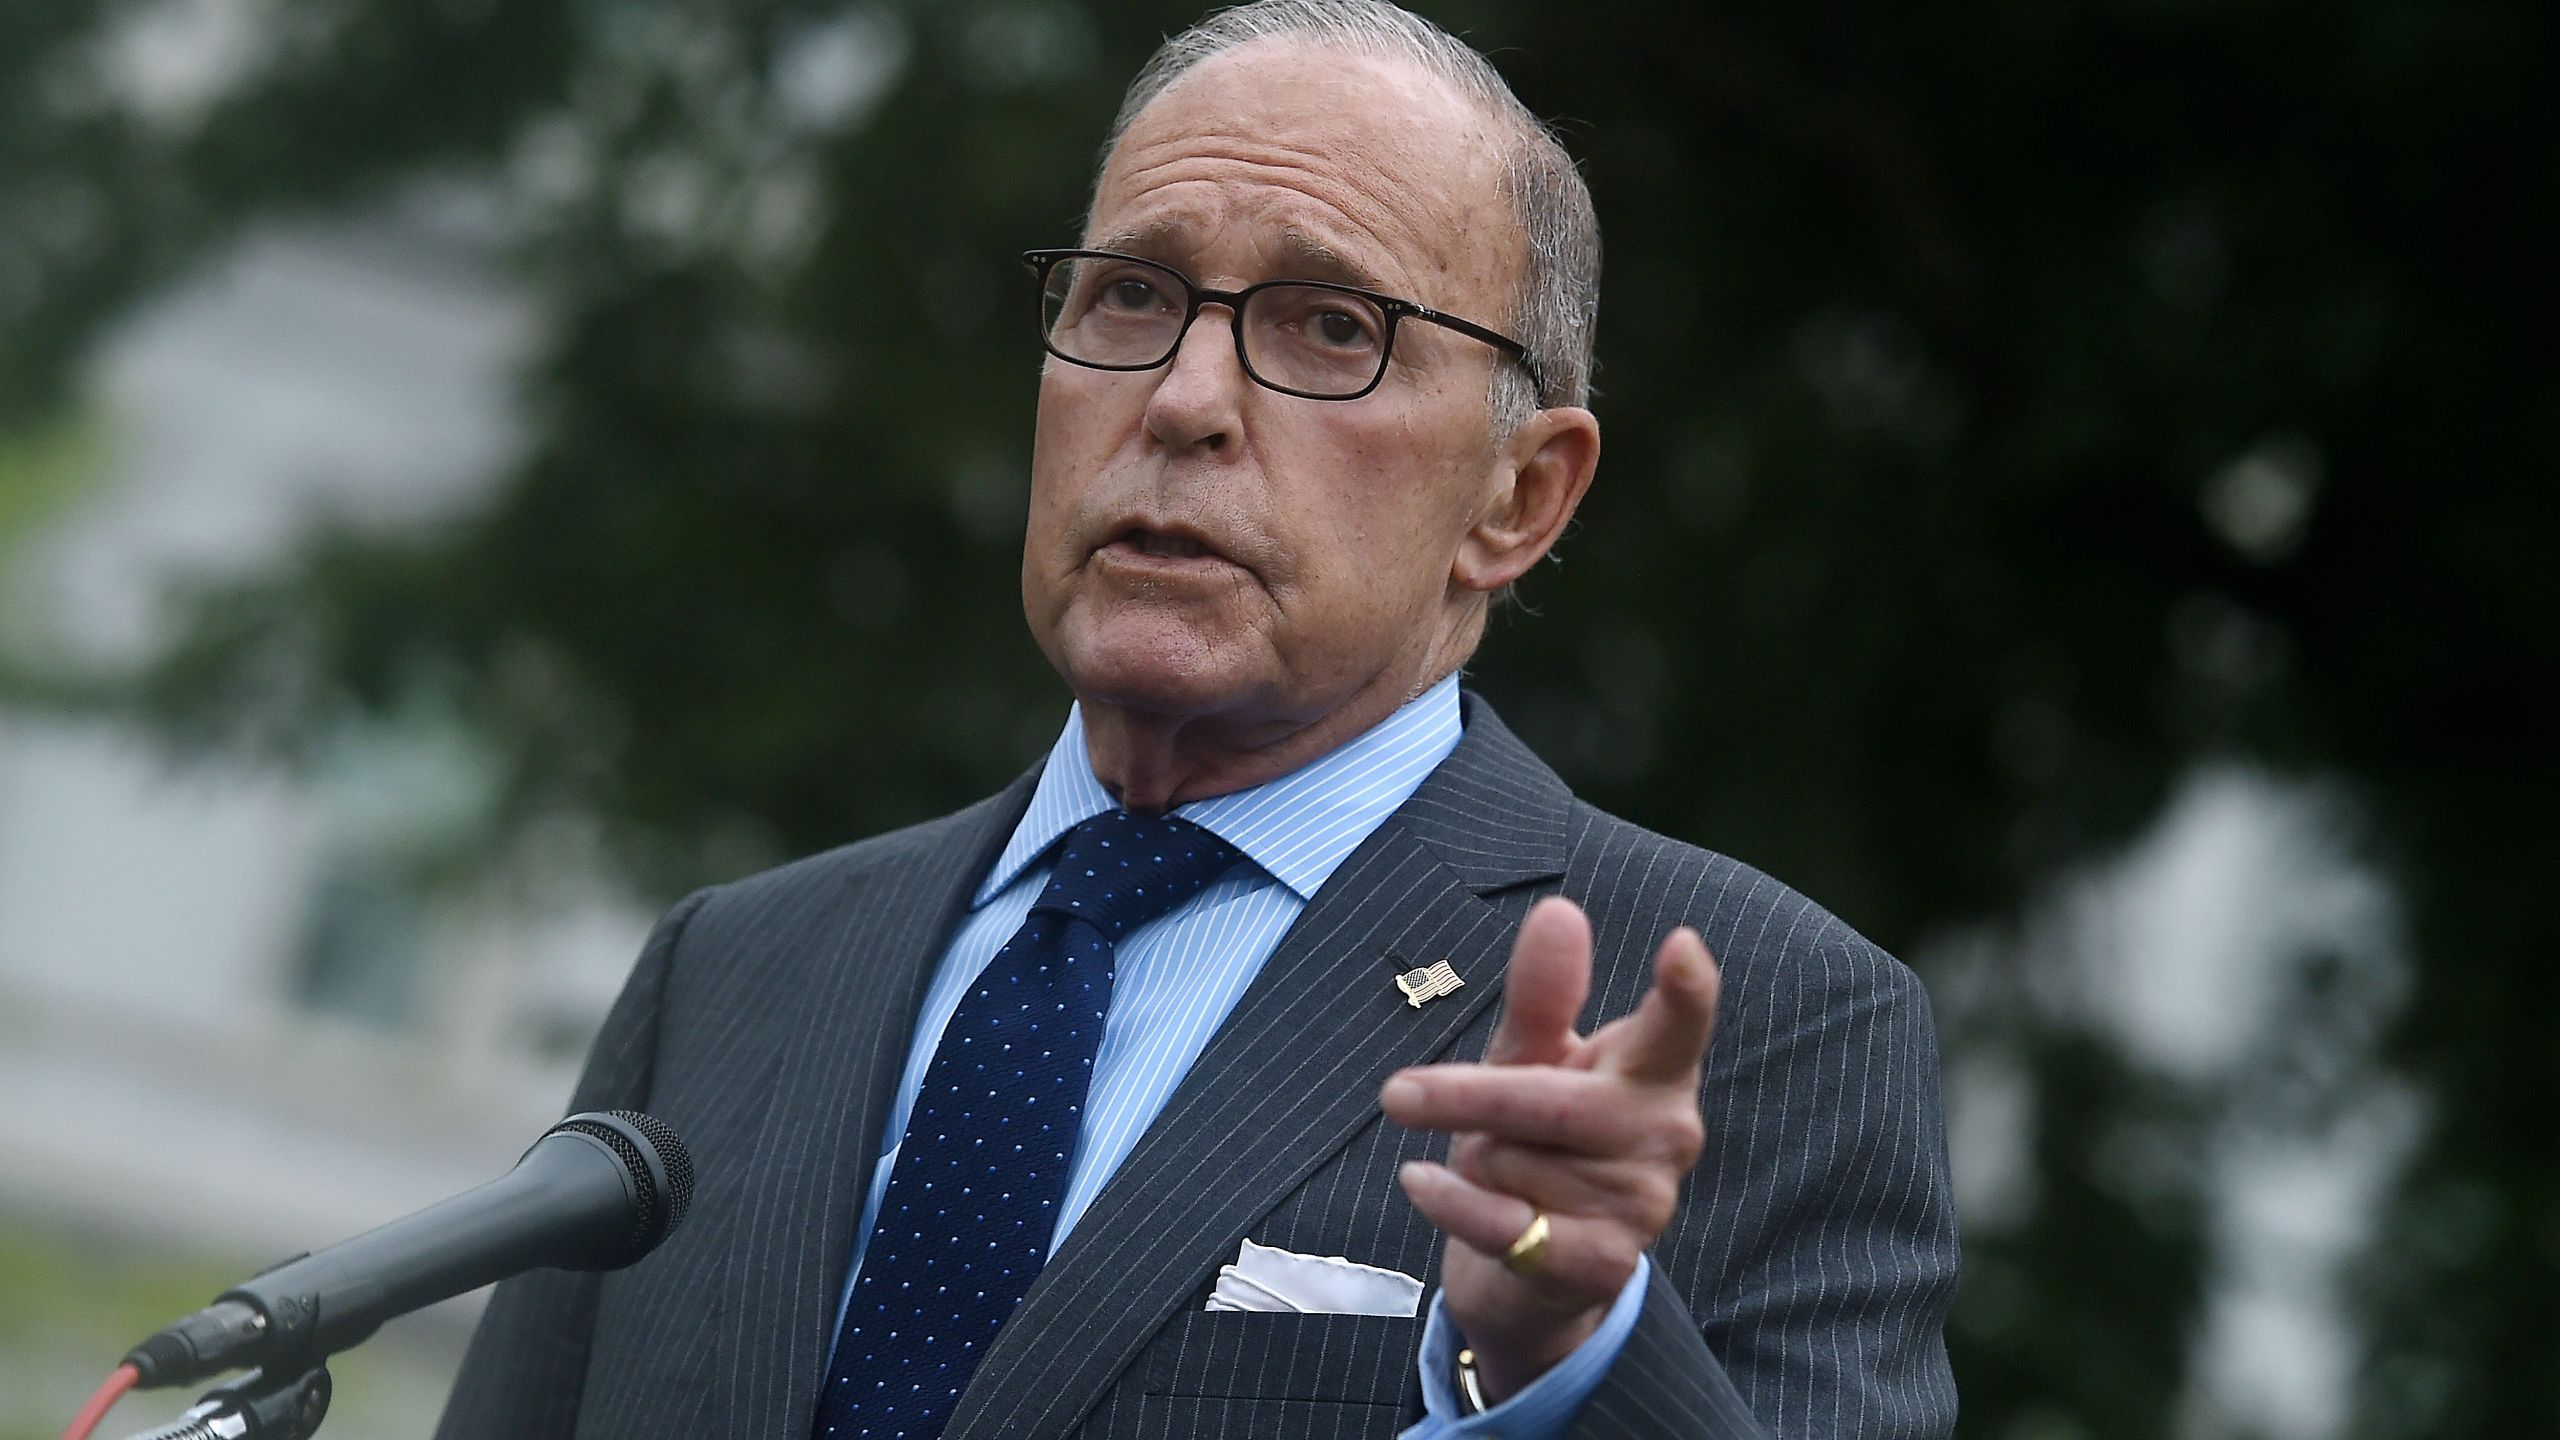 Director of the National Economic Council Larry Kudlow speaks to reporters outside the West Wing of the White House on Sept. 2, 2020. (Olivier DOULIERY/AFP via Getty Images)